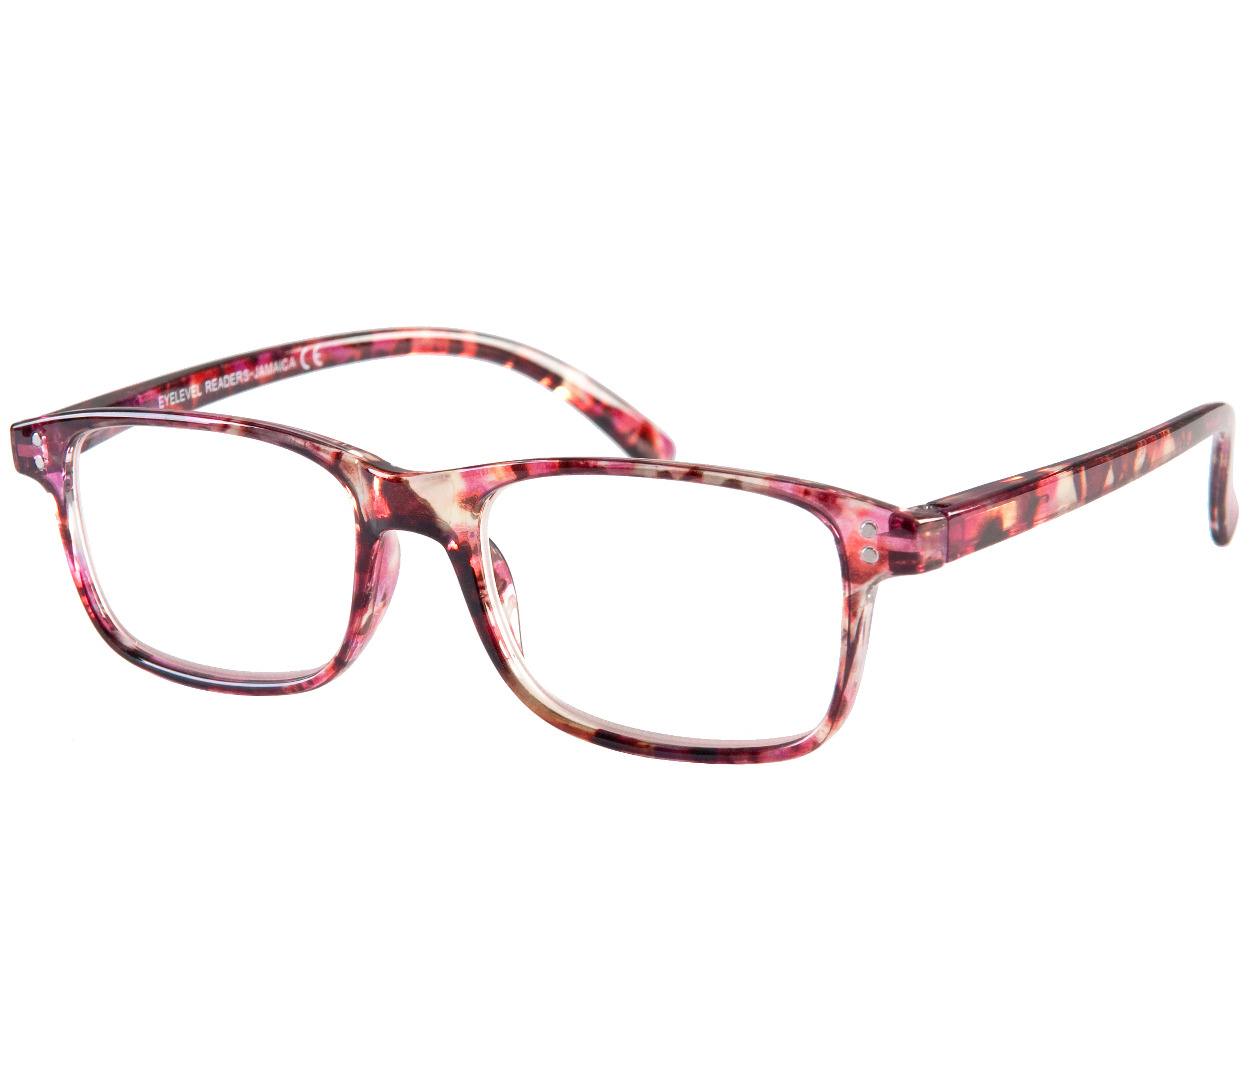 Main Image (Angle) - Jamaica (Pink) Fashion Reading Glasses